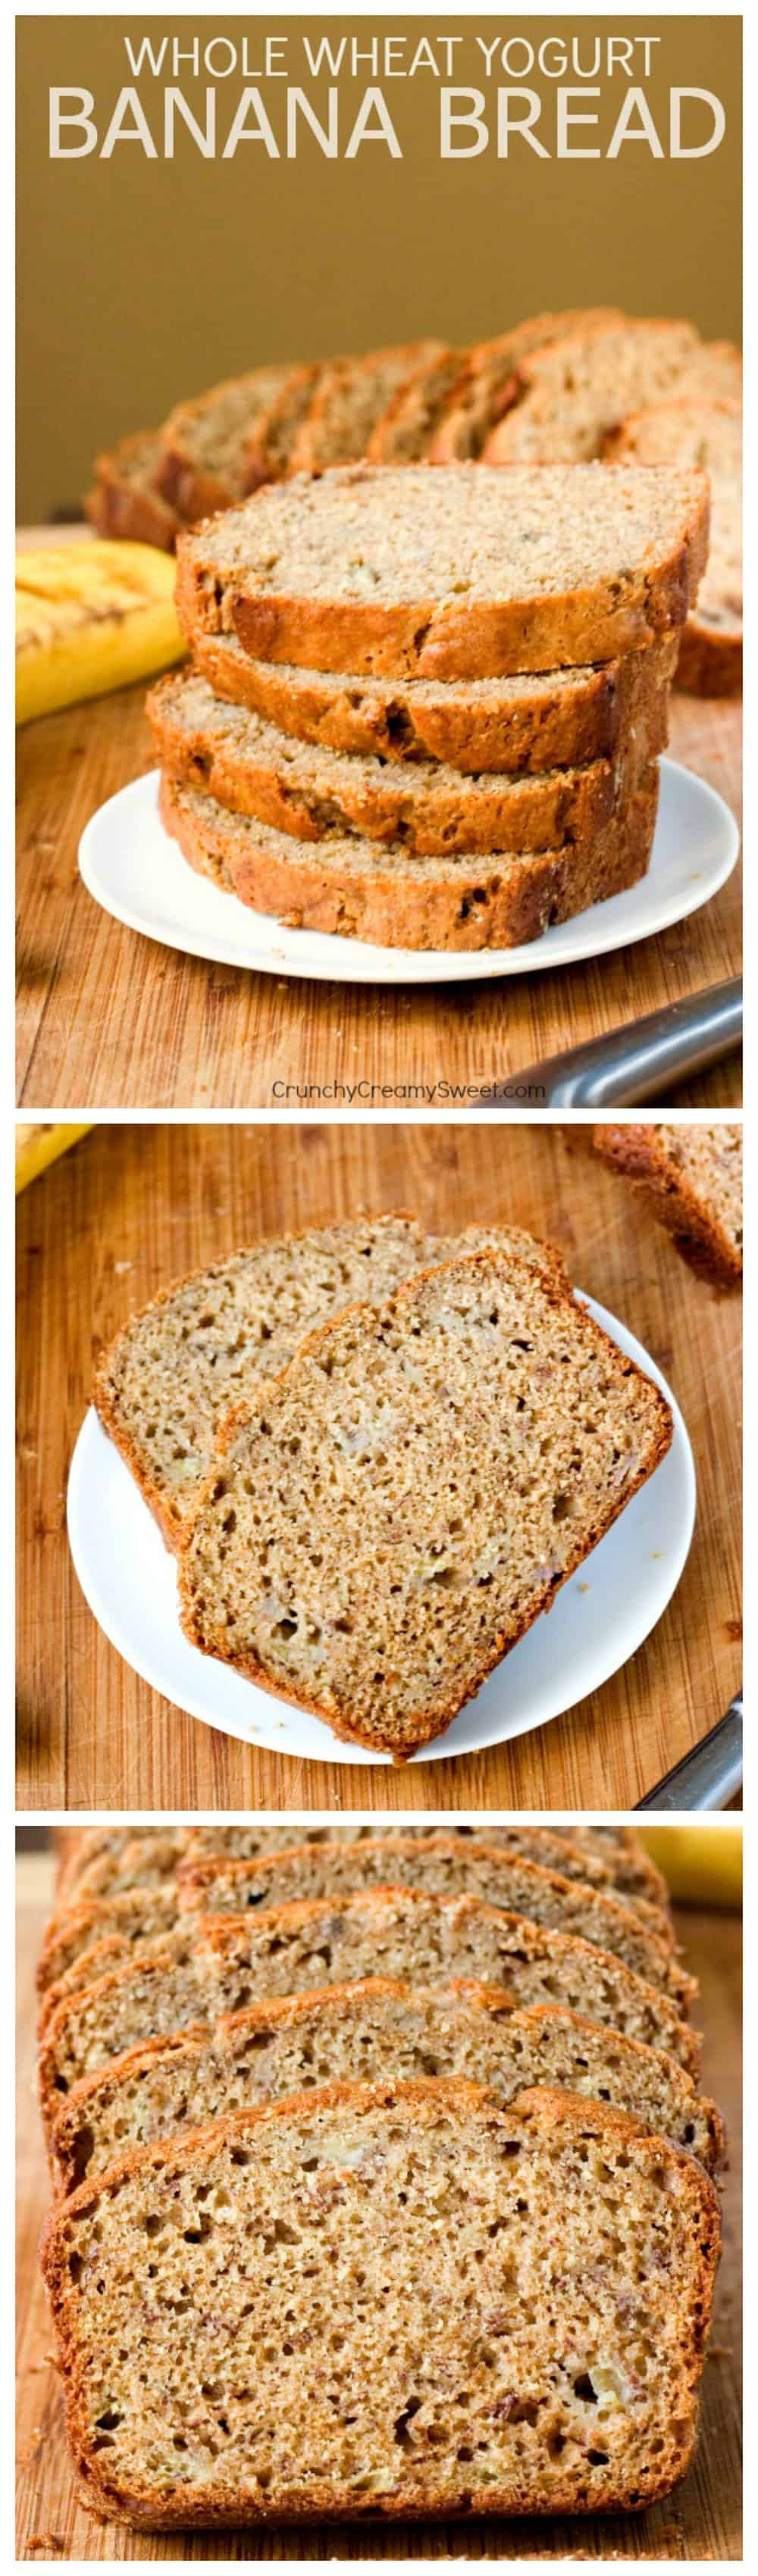 Whole Wheat Yogurt Banana Bread a healthier way to enjoy your favorite quick bread Whole Wheat Yogurt Banana Bread with Cinnamon